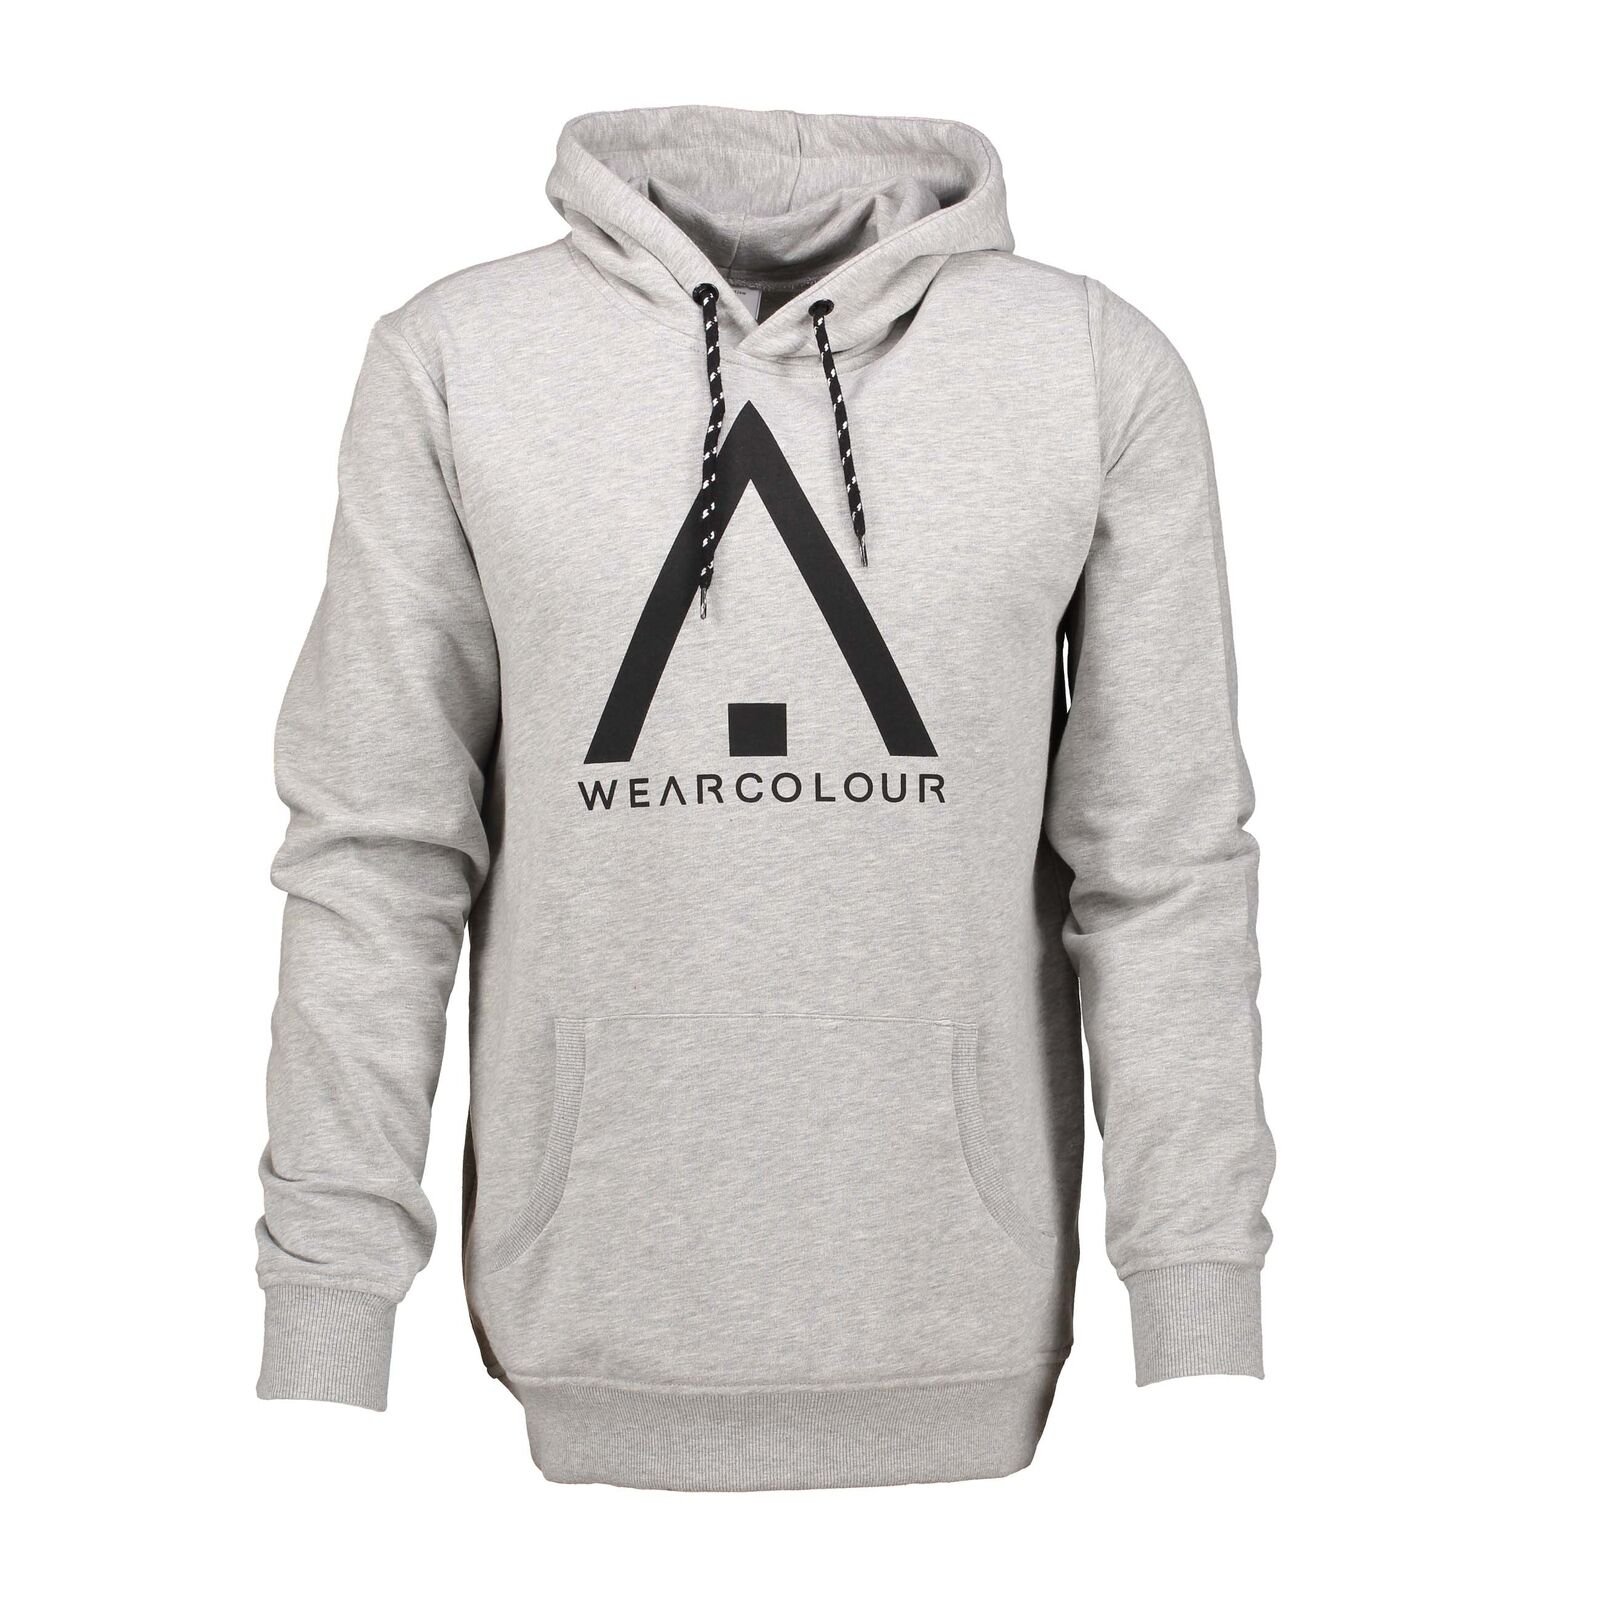 Wear Colour Mens Wear Hood Hoodie Grey Melange